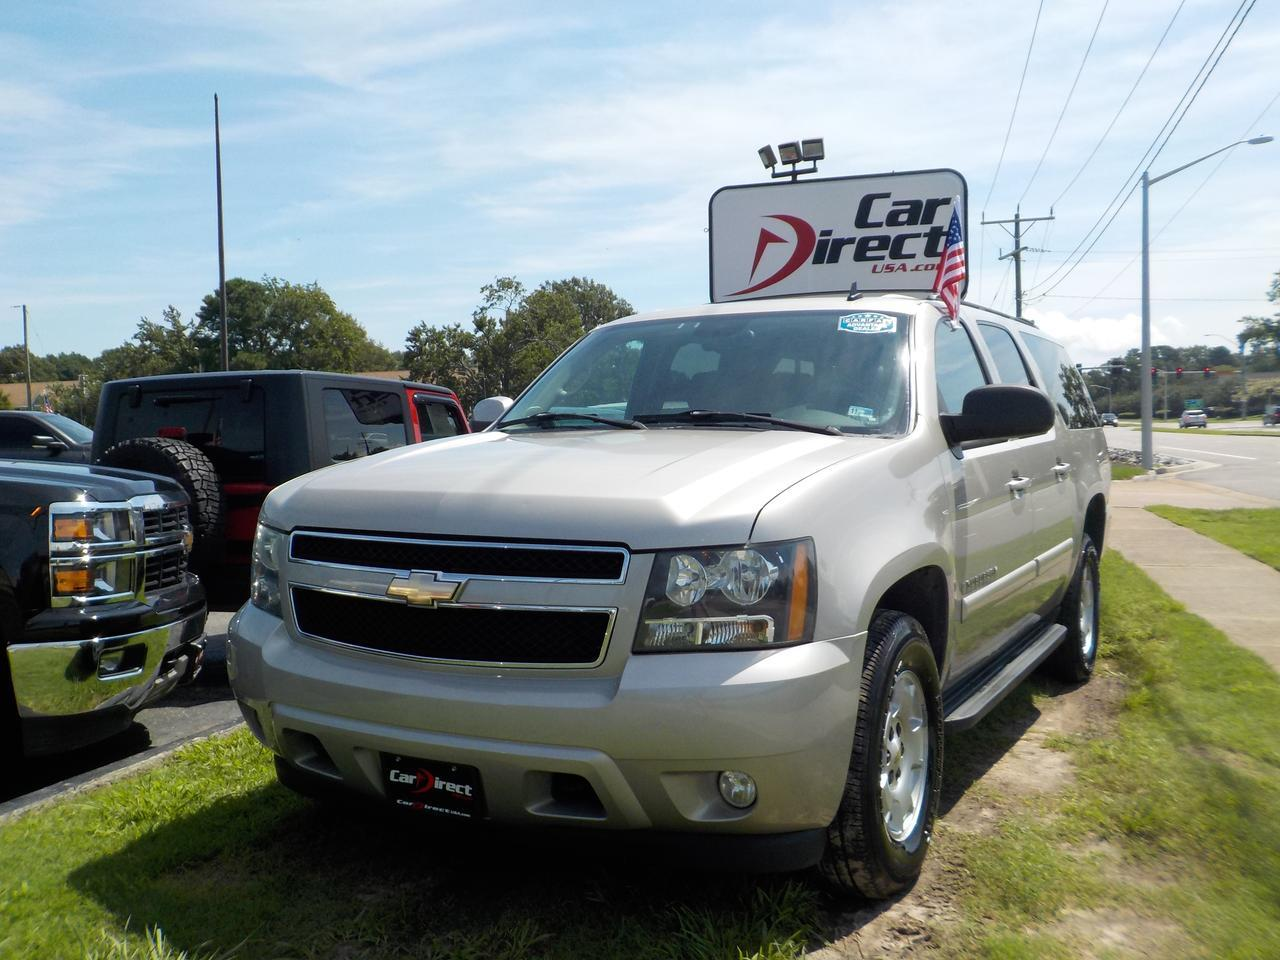 2008 CHEVROLET SUBURBAN LT 4X4, LEATHER, NAV, SUNROOF, HEATED/COOLED SEATS, DVD PLAYER, BOSE SOUND, CLEAN CARFAX!